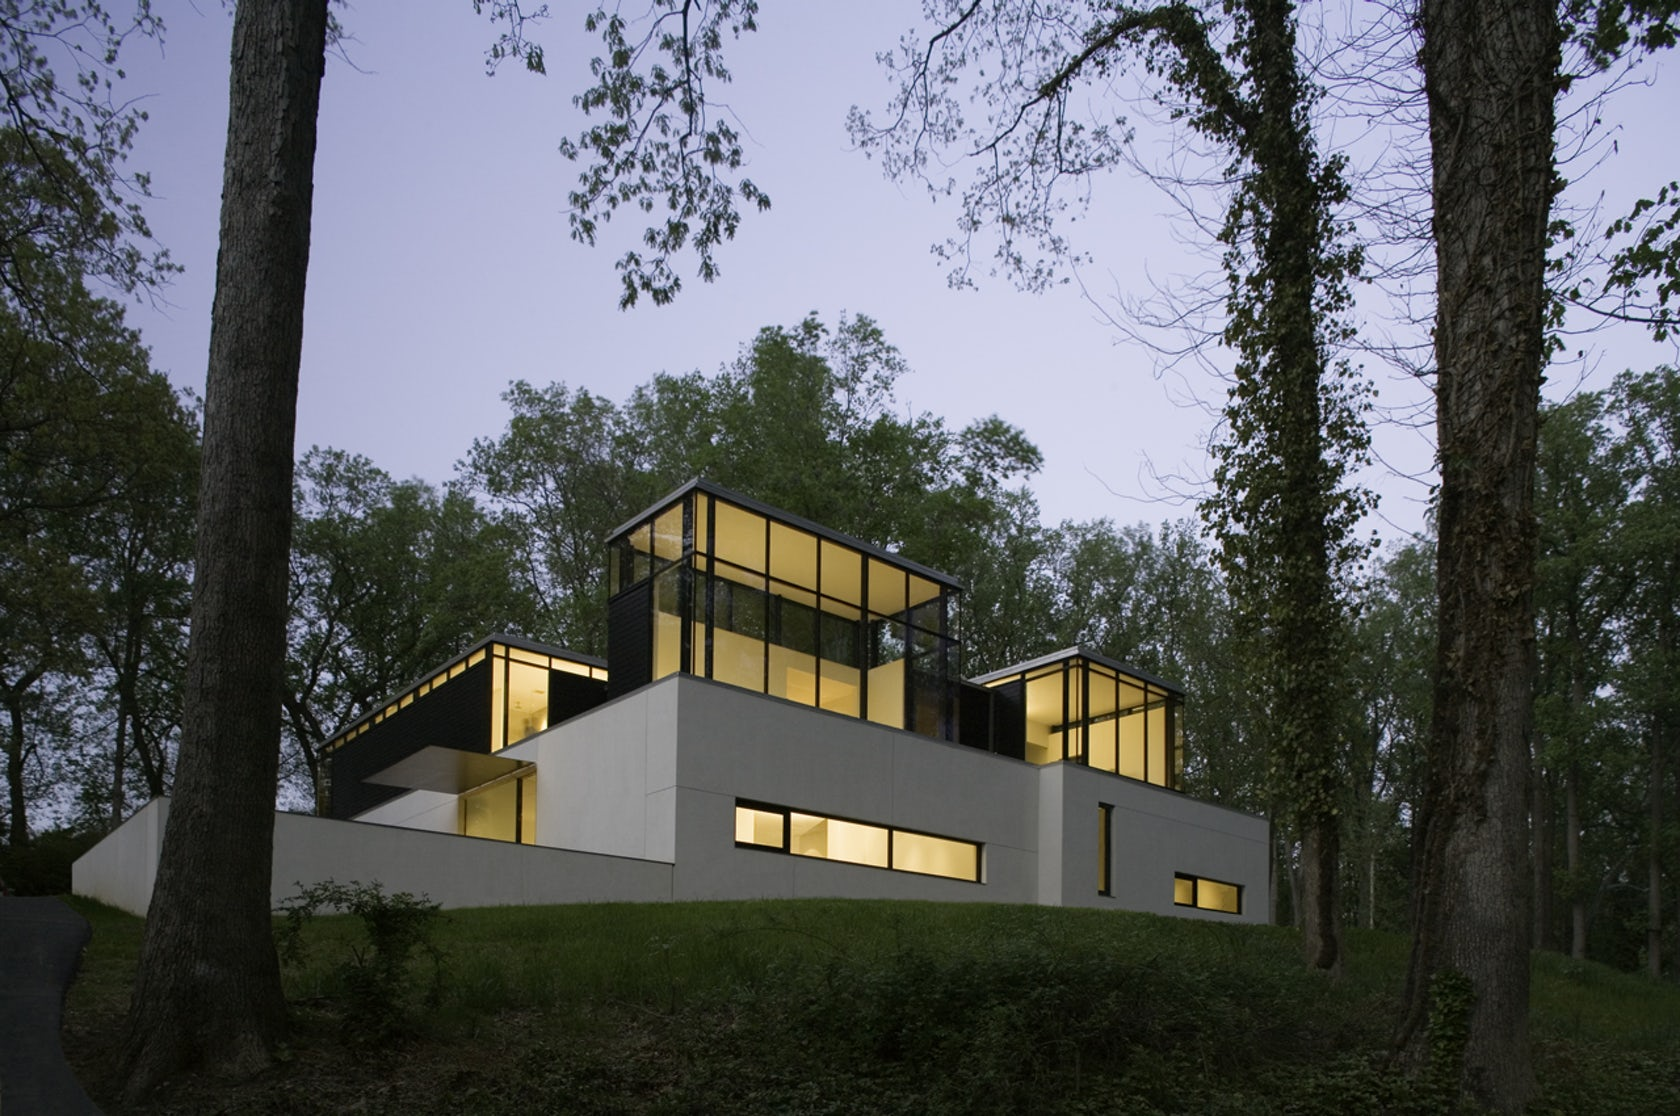 Project by David Jameson Architect